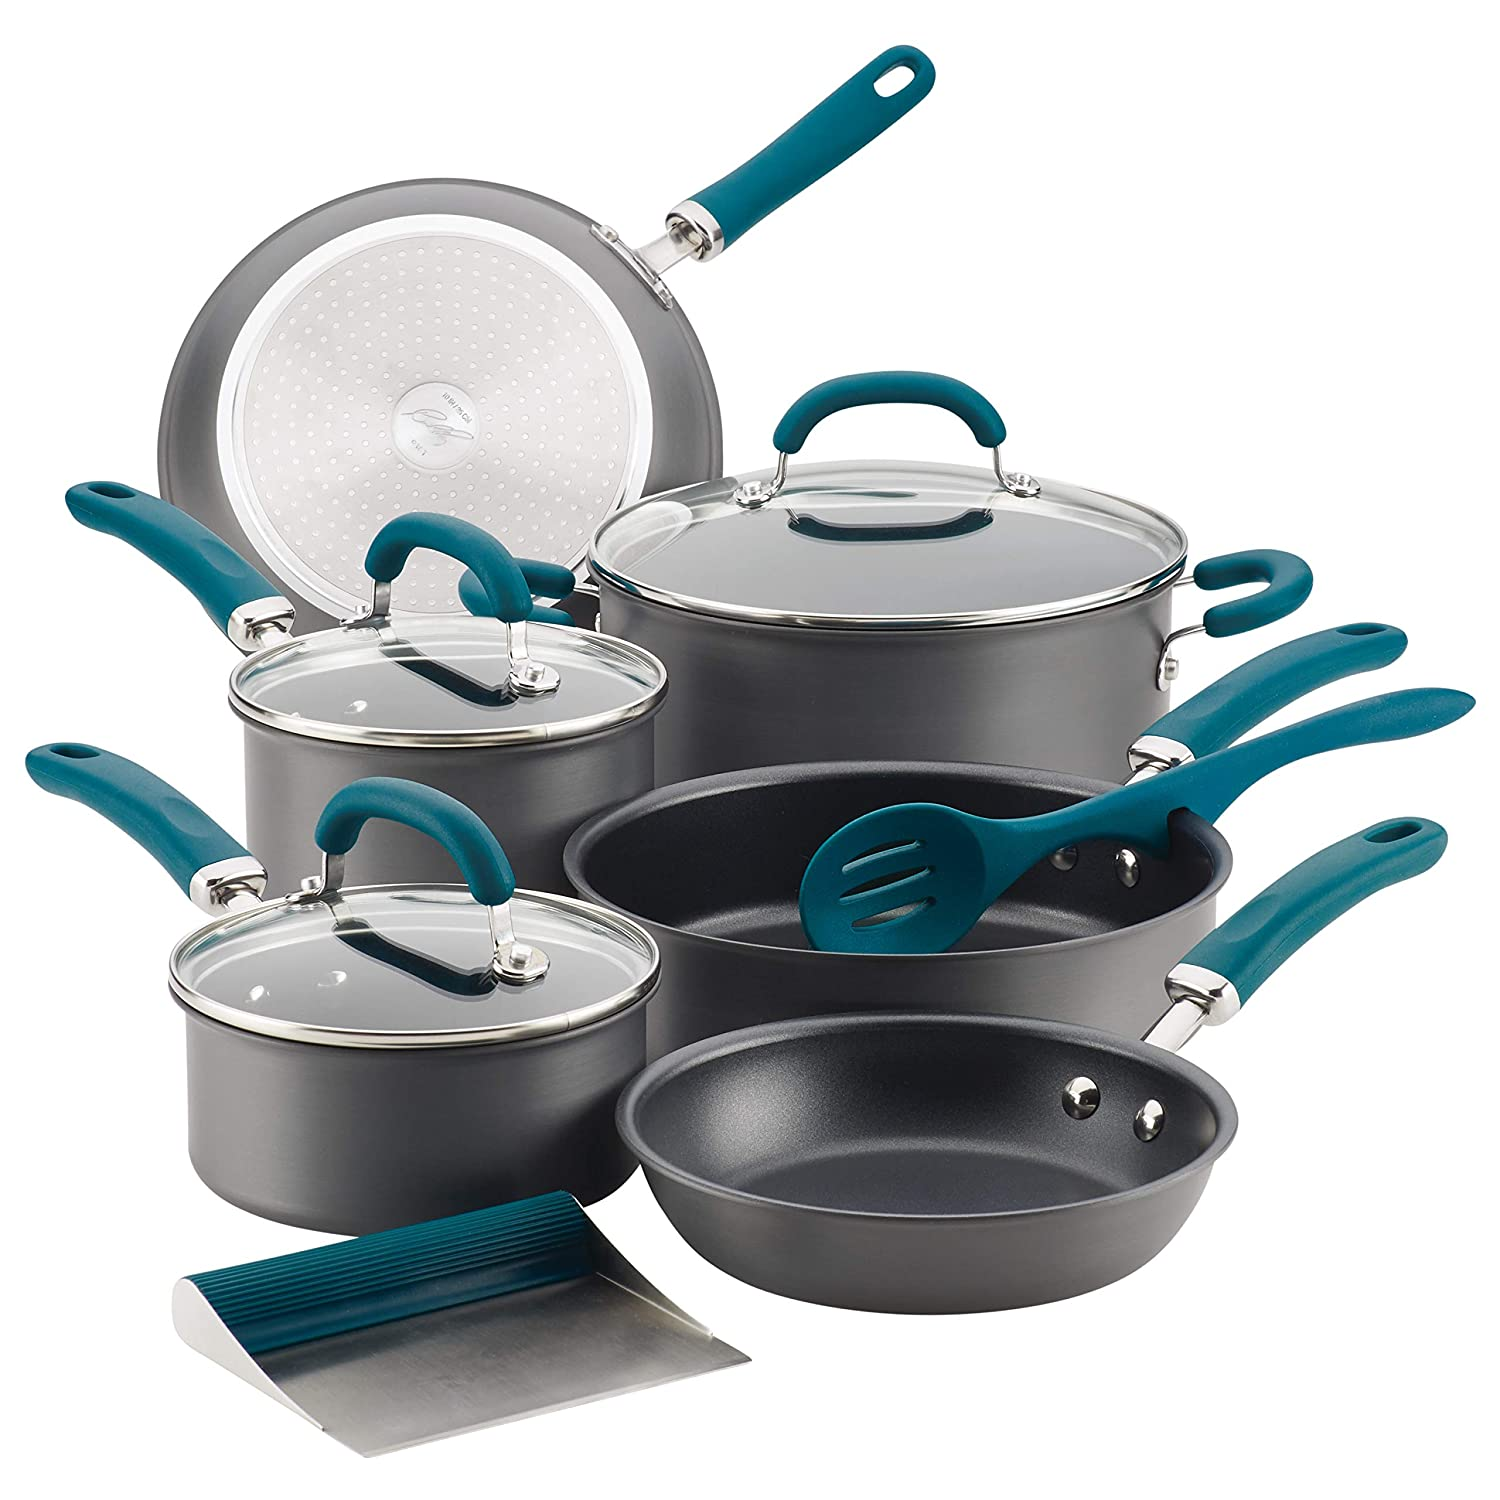 Rachael Ray 81123 11-Piece Hard Anodized Aluminum Cookware Set, Gray with Teal Handles